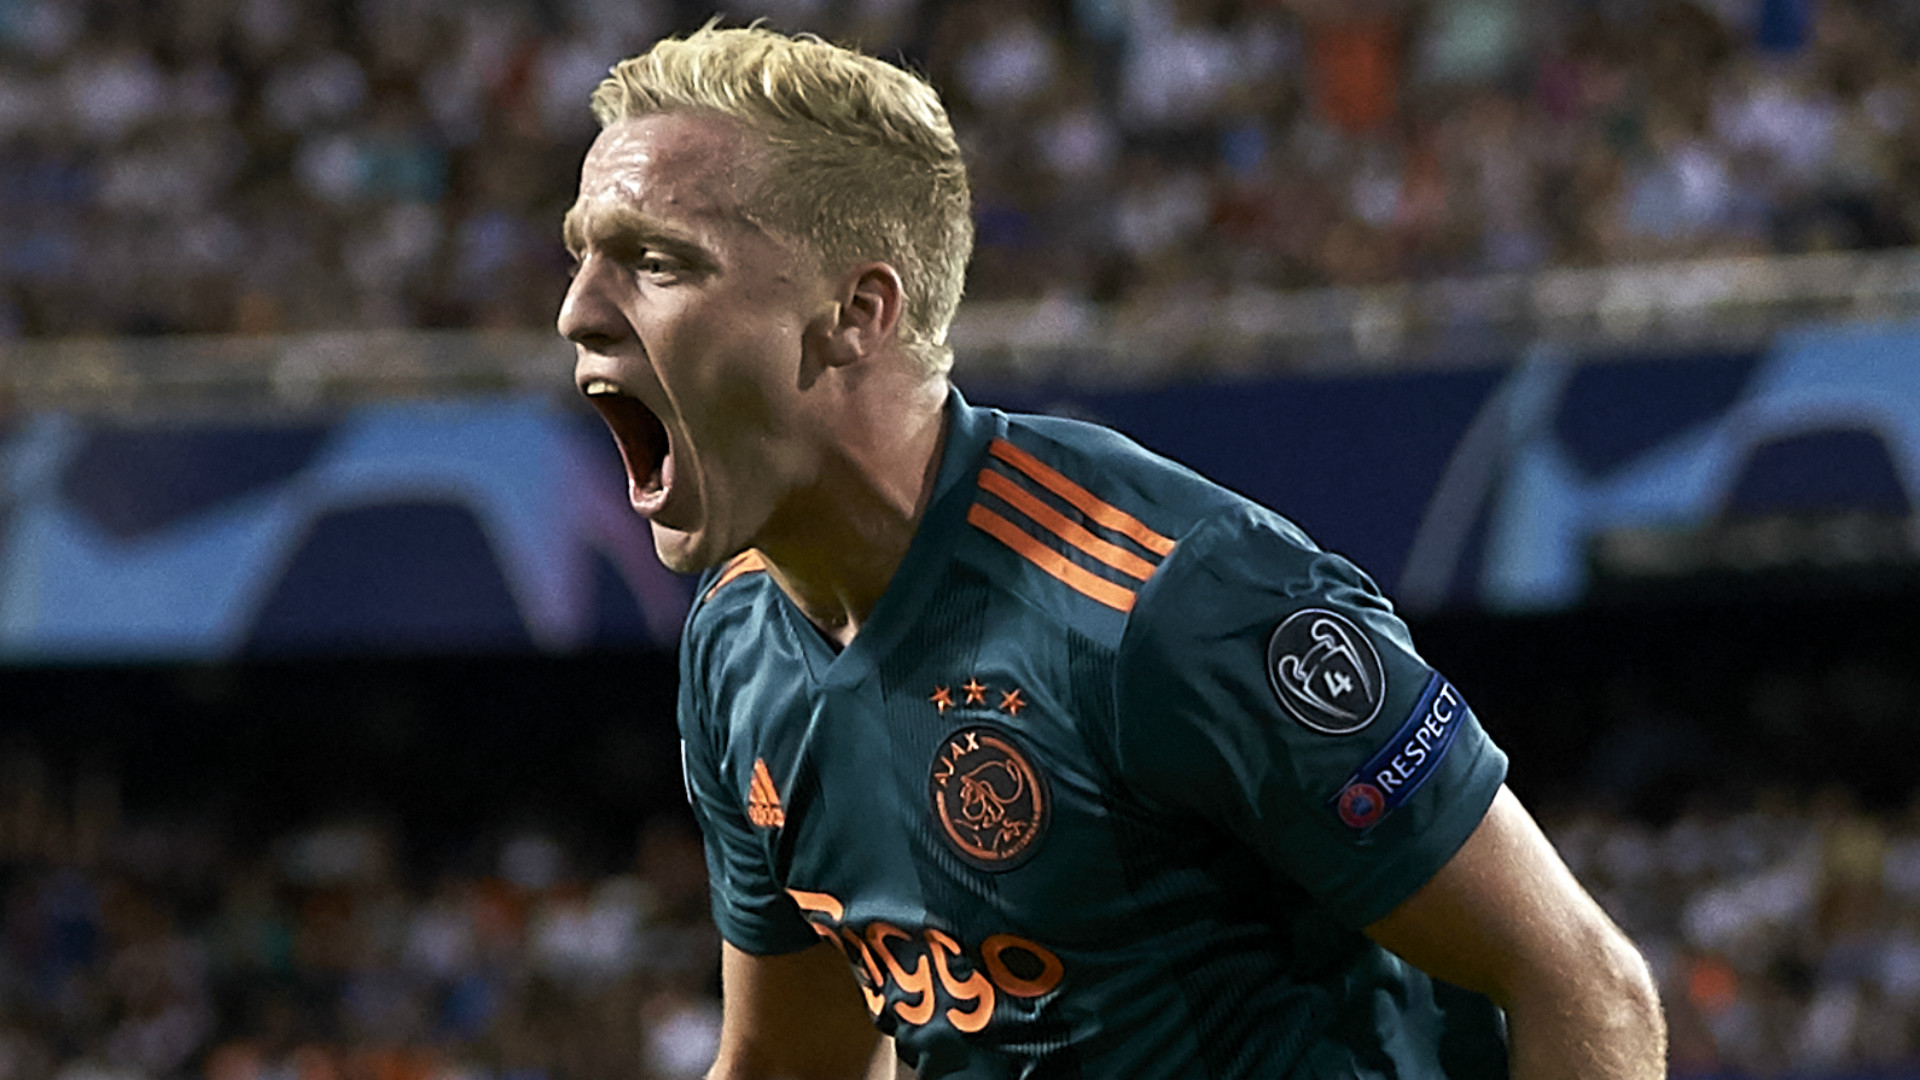 Arsenal really wanted Van de Beek but Man Utd is the right choice, Swart claims